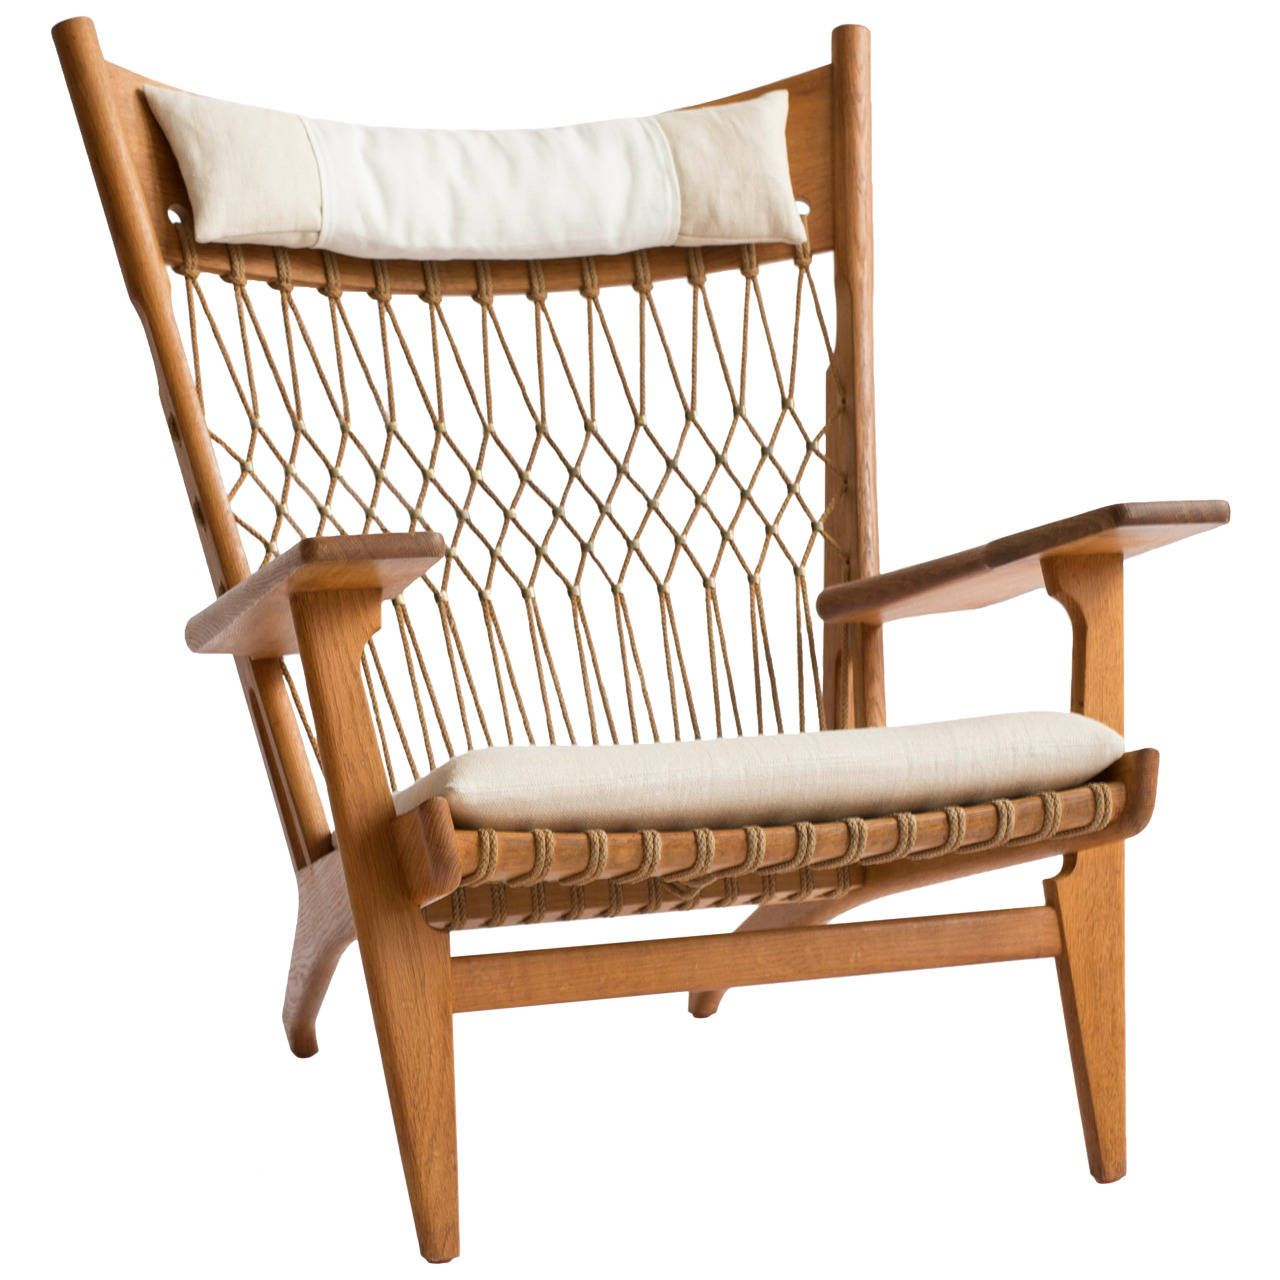 Antique lounge chairs - View This Item And Discover Similar Lounge Chairs For Sale At A Rare Hans J Wegner Oak Armchair Model Designed 1968 And Made By Cabinetmaker Johannes